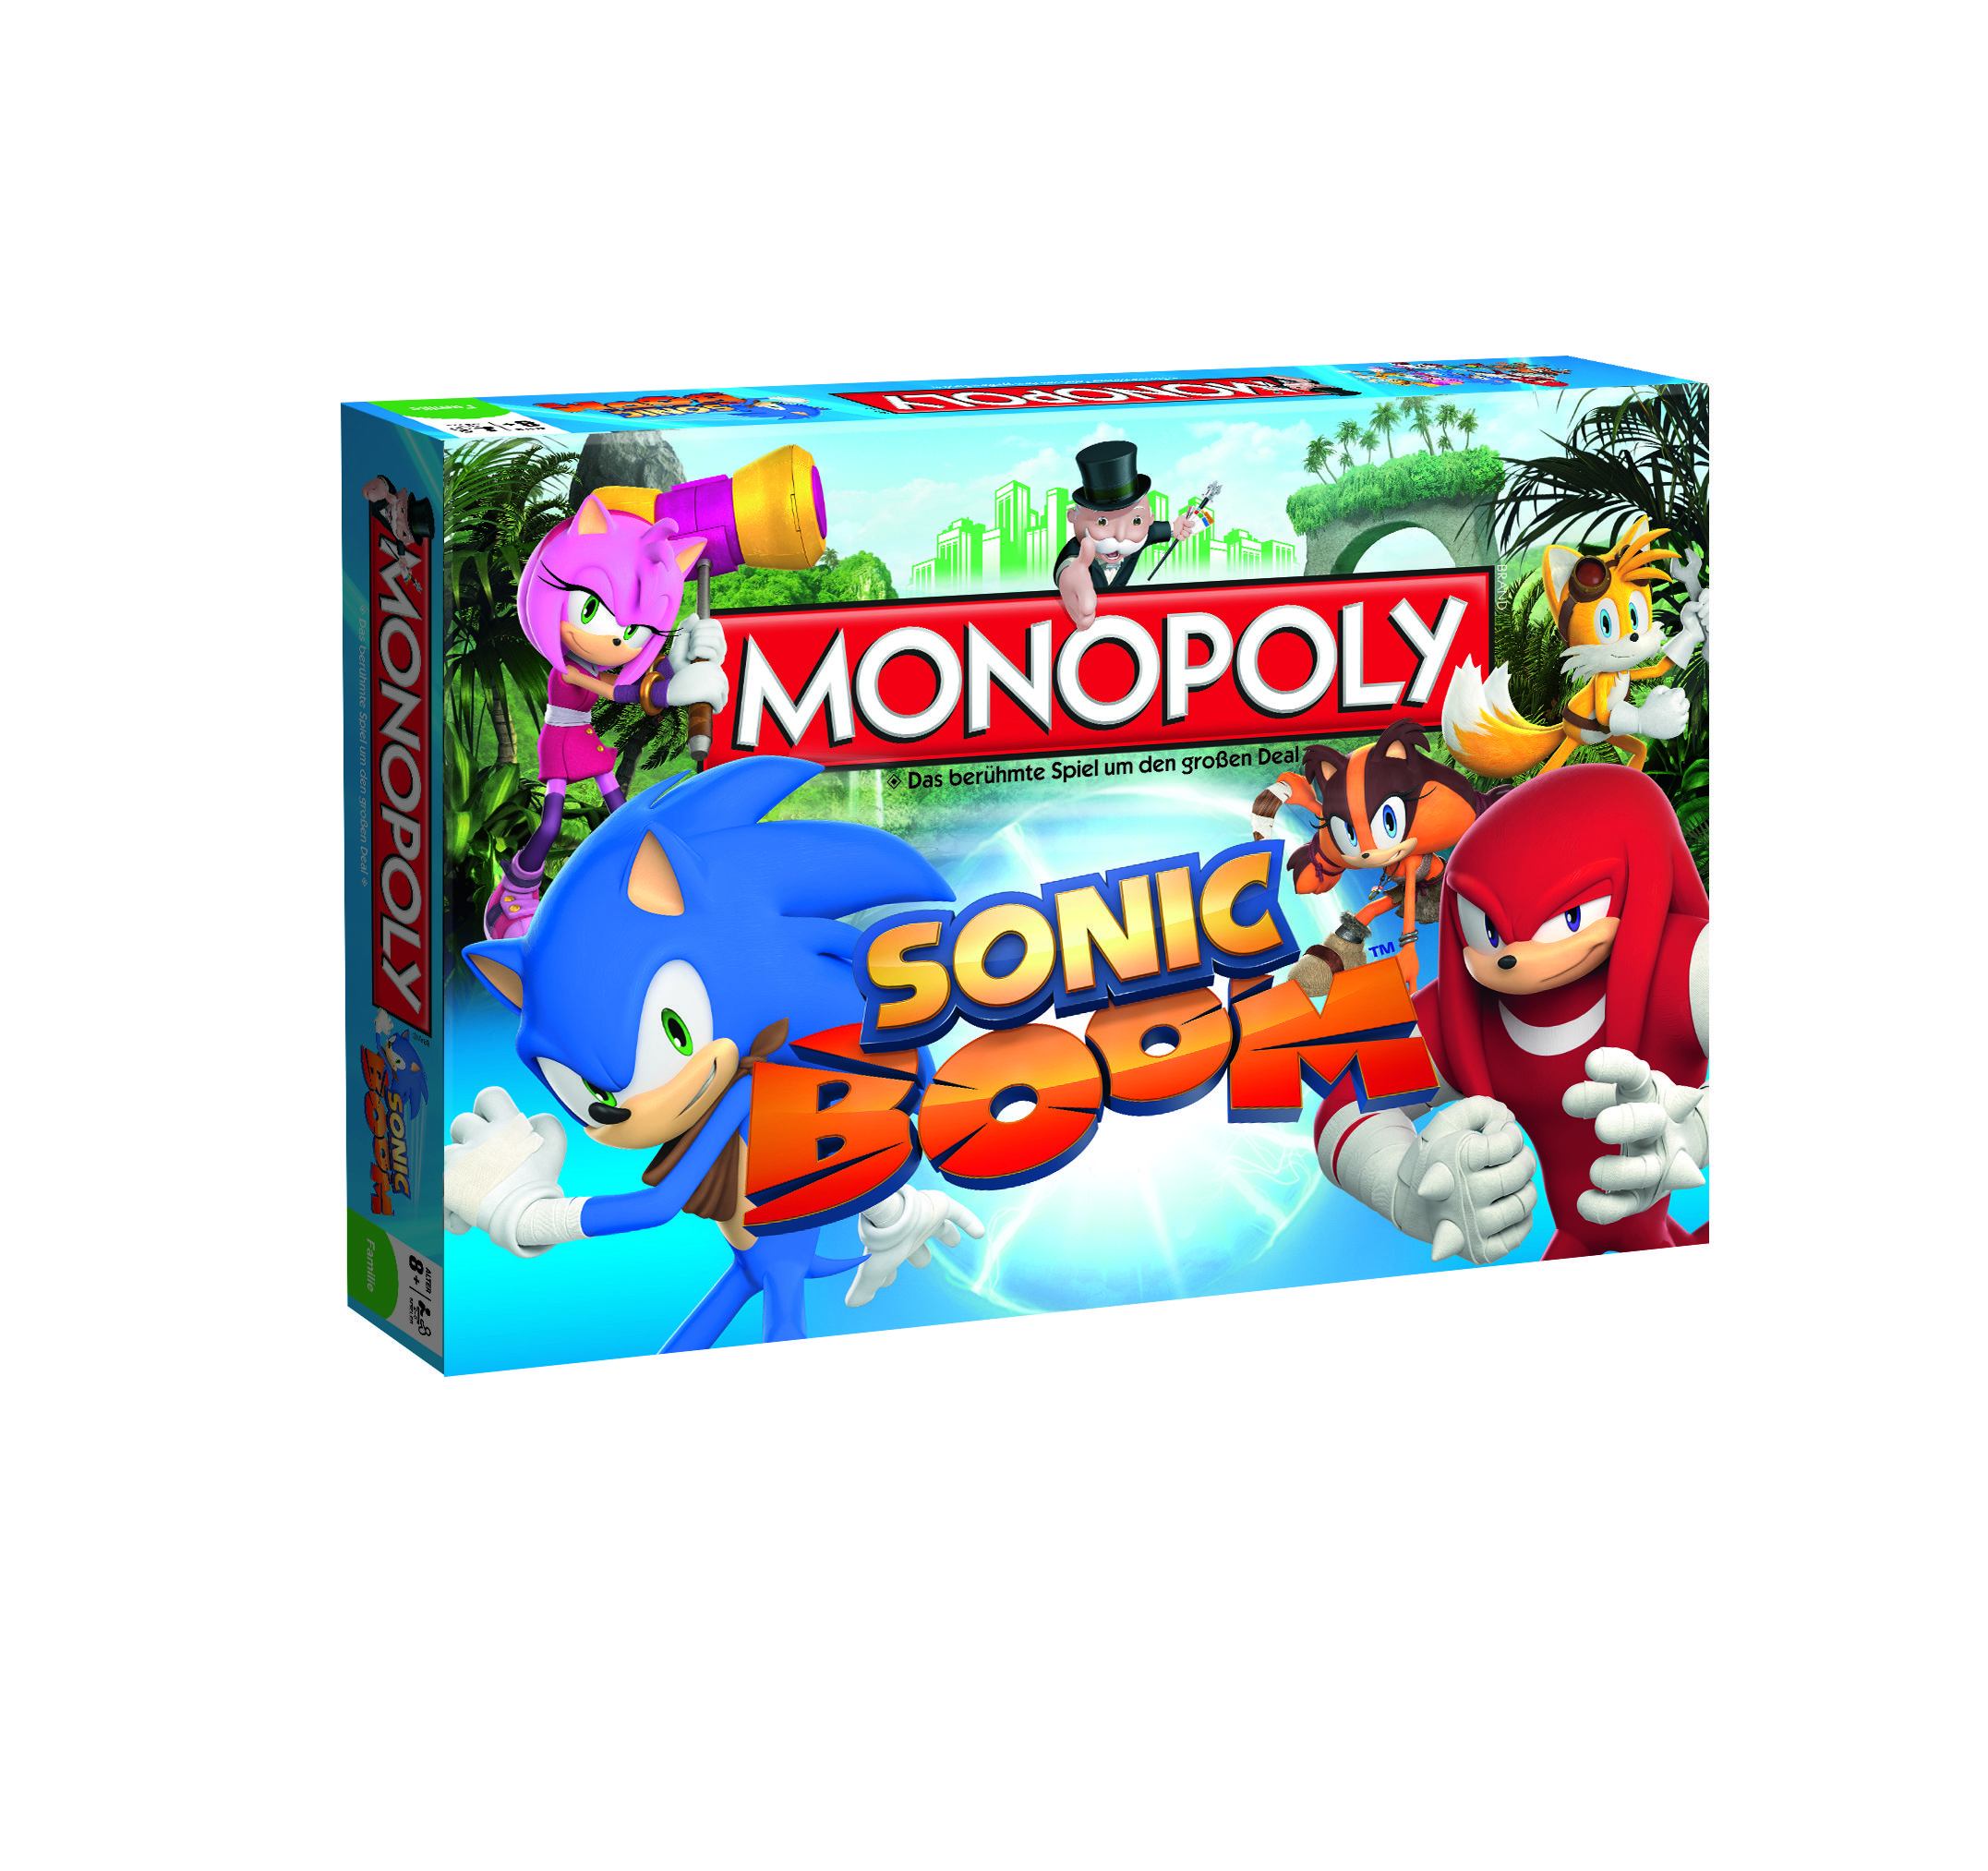 monopoly sonic boom sonic the hedgehog ist seit ber 20. Black Bedroom Furniture Sets. Home Design Ideas